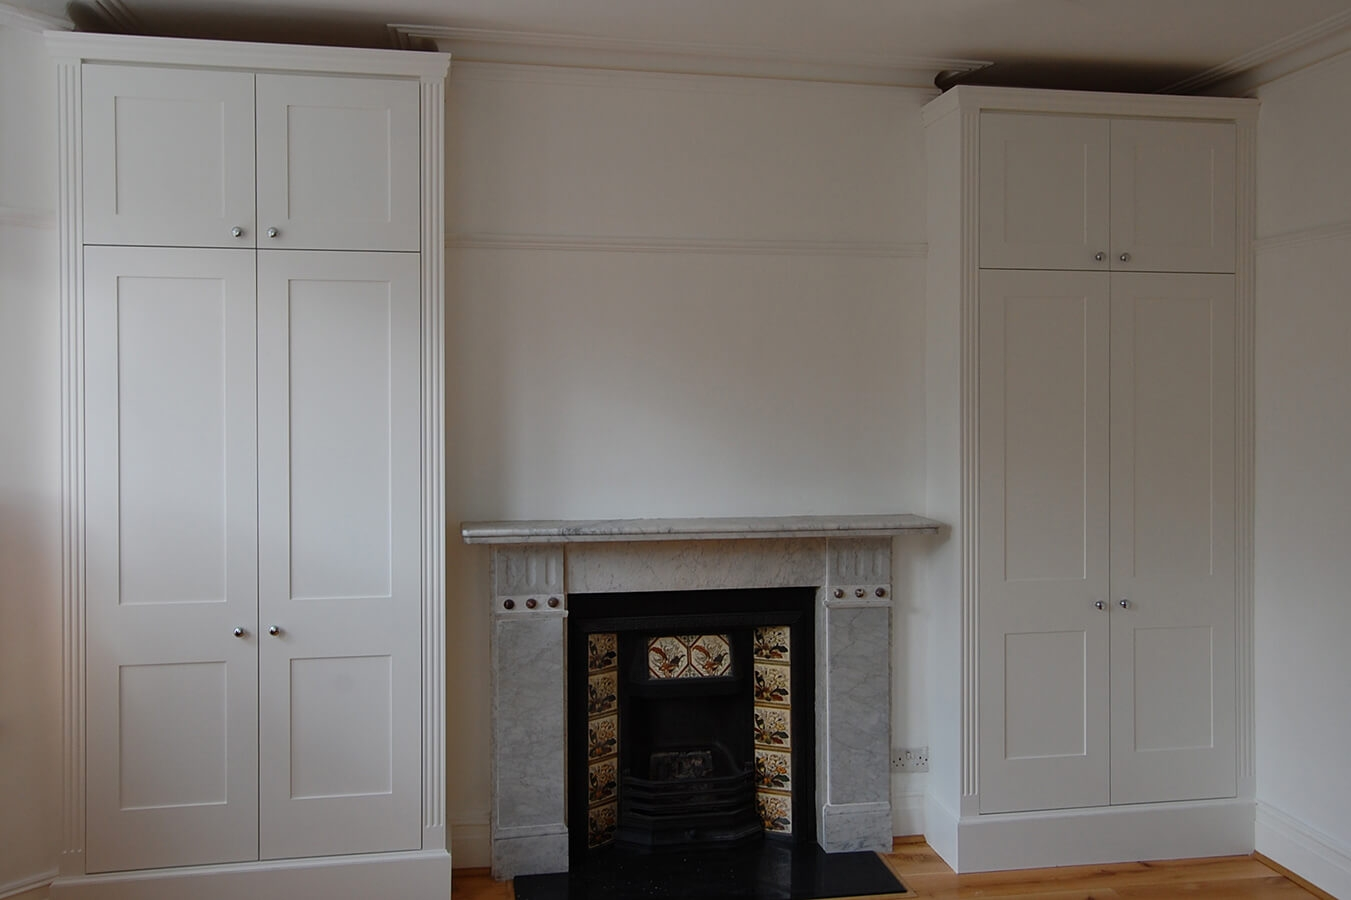 London Built In Wardrobes Alcoves Google Search Bedroom Ideas Pertaining To Alcove Wardrobes Designs (View 13 of 15)